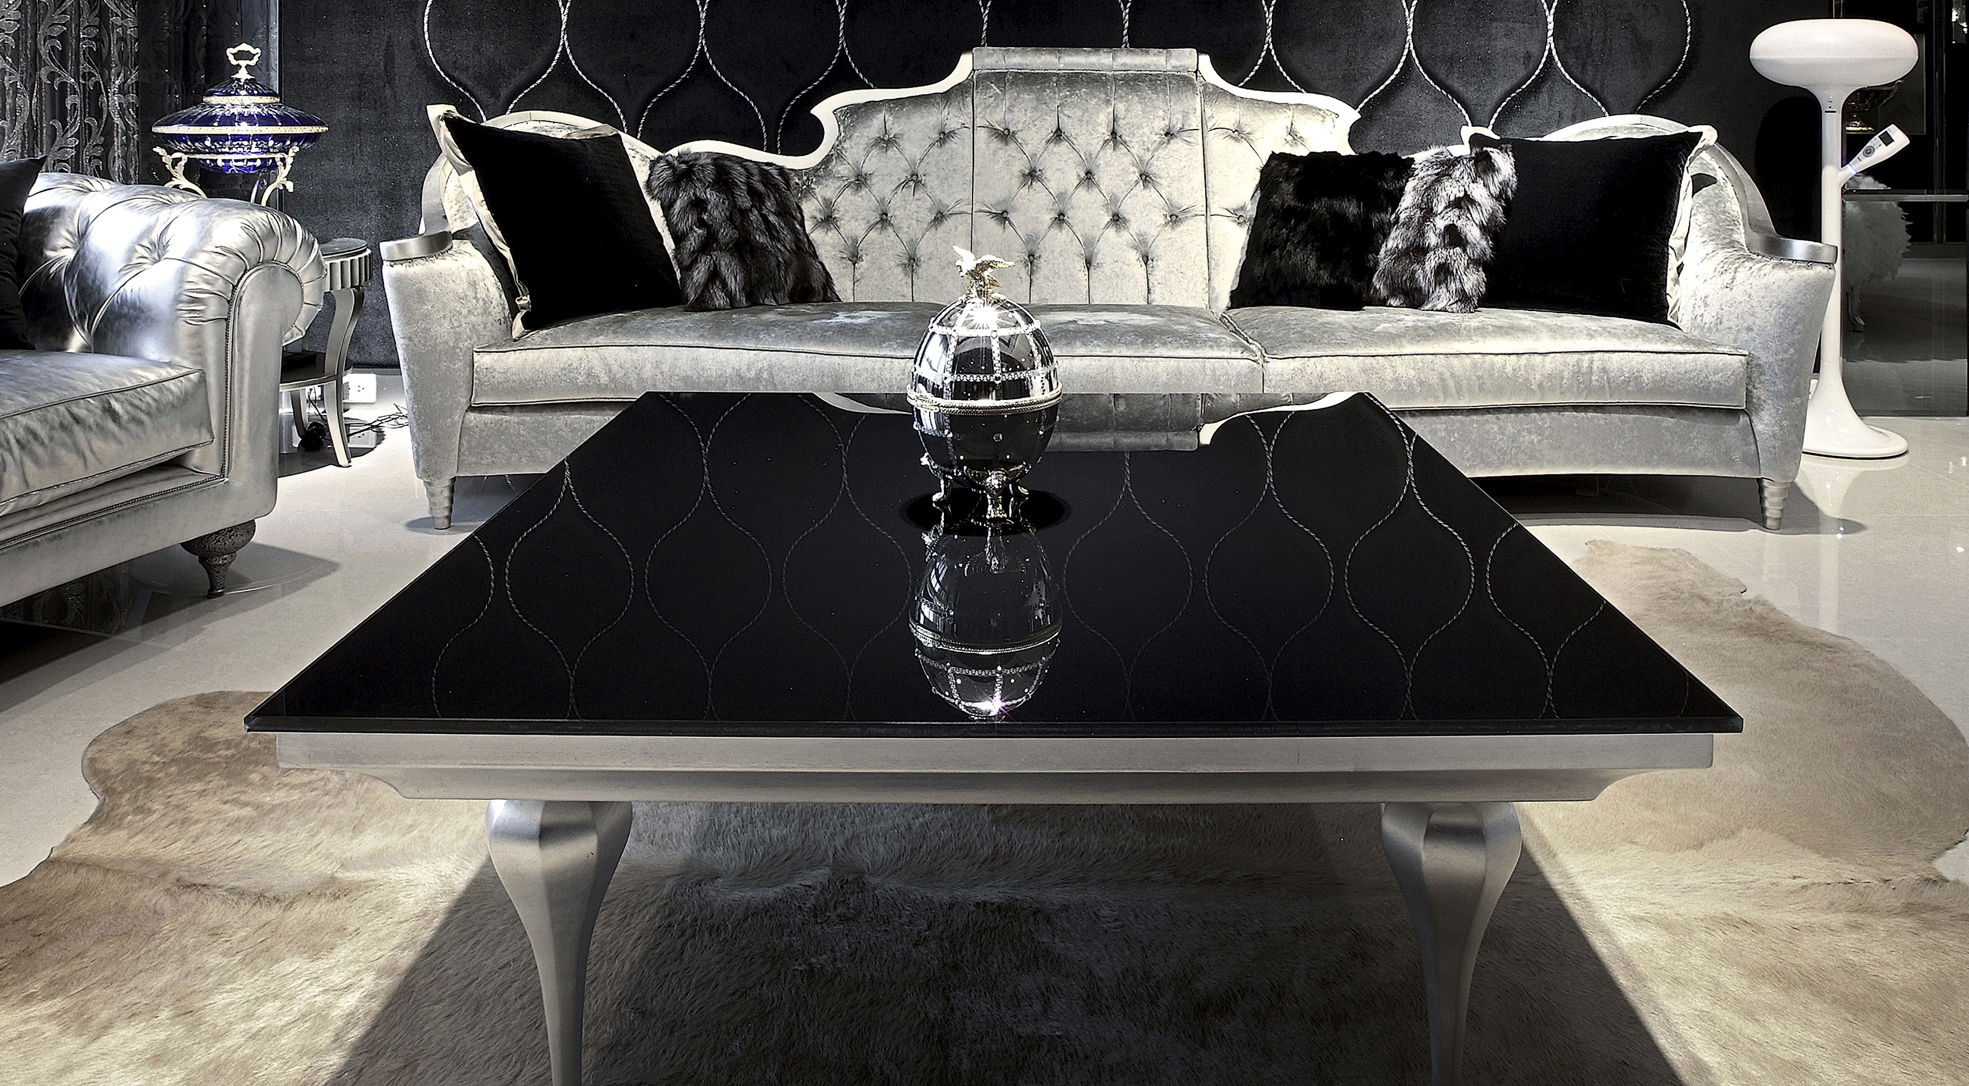 Luxury Glass Coffee Tables I Simply Wont Ever The Perfect Size To Fit With One Of Our Younger Sectional Sofas Be Able To Look At It In The Same Way Again (Image 4 of 10)